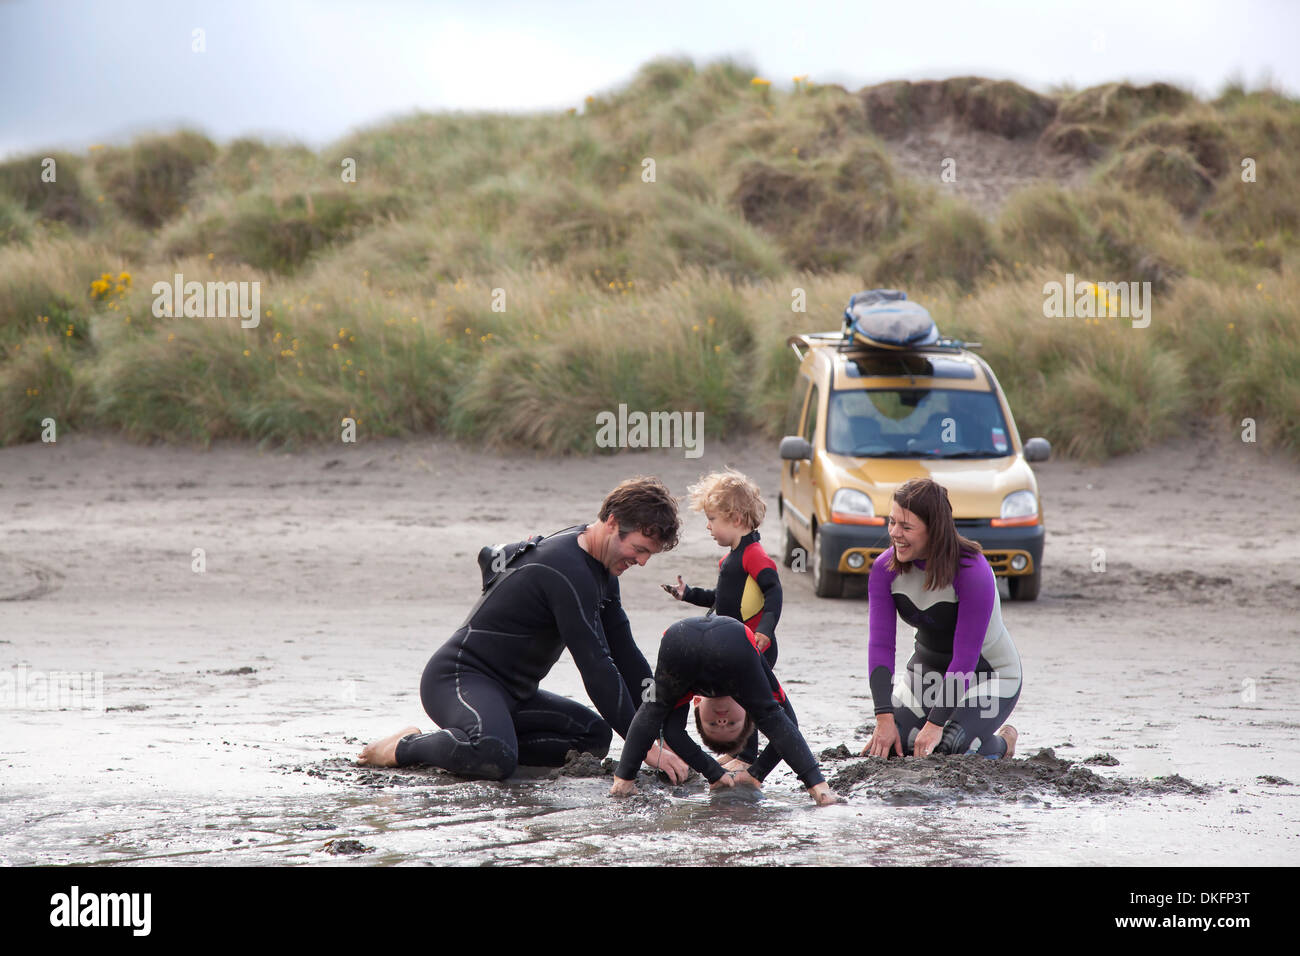 Family with two boys playing on beach - Stock Image